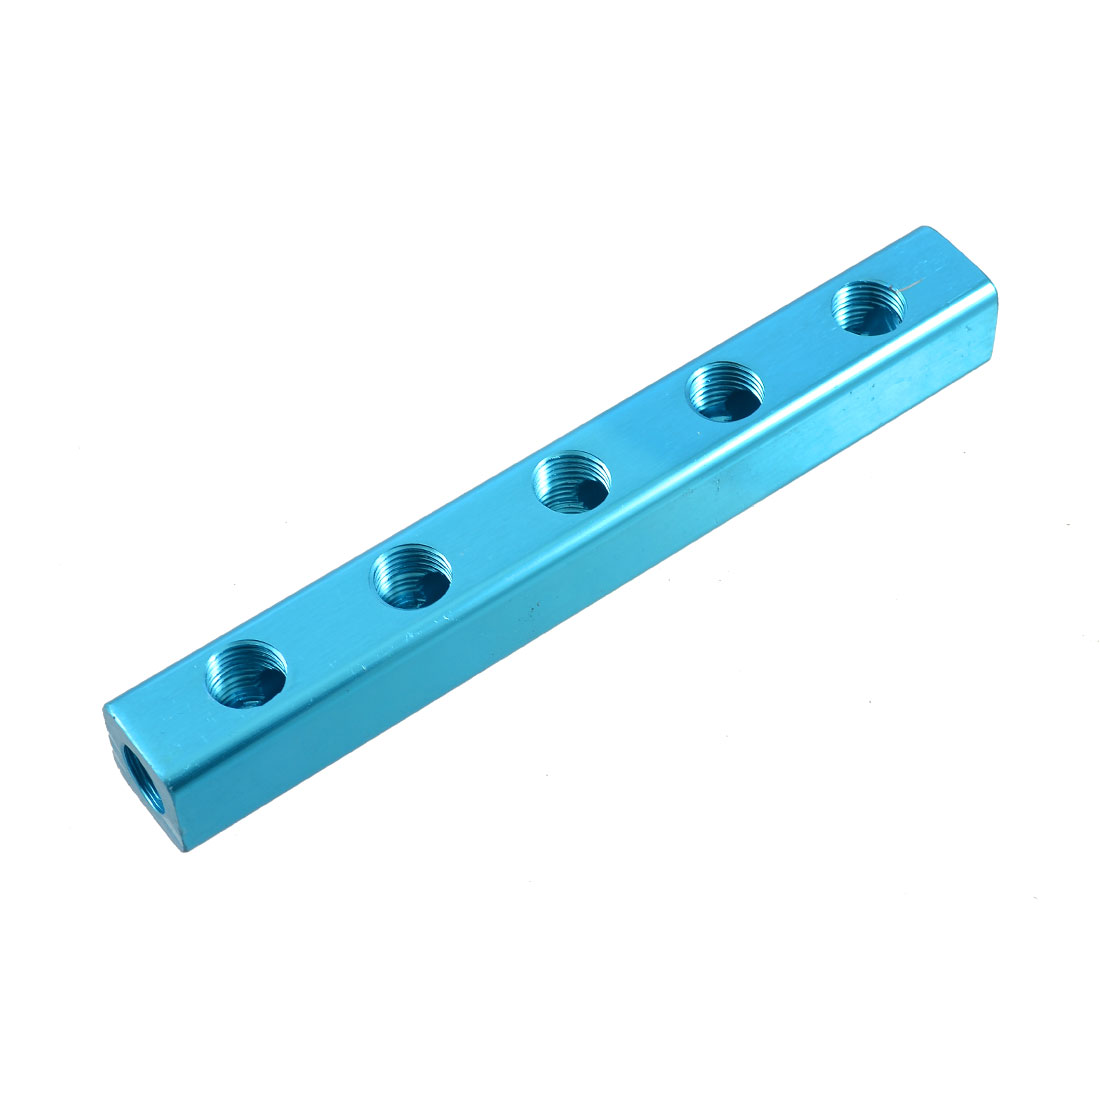 Pneumatic Quick Connect Blue Aluminum 5 Way Air Manifold Splitter Block